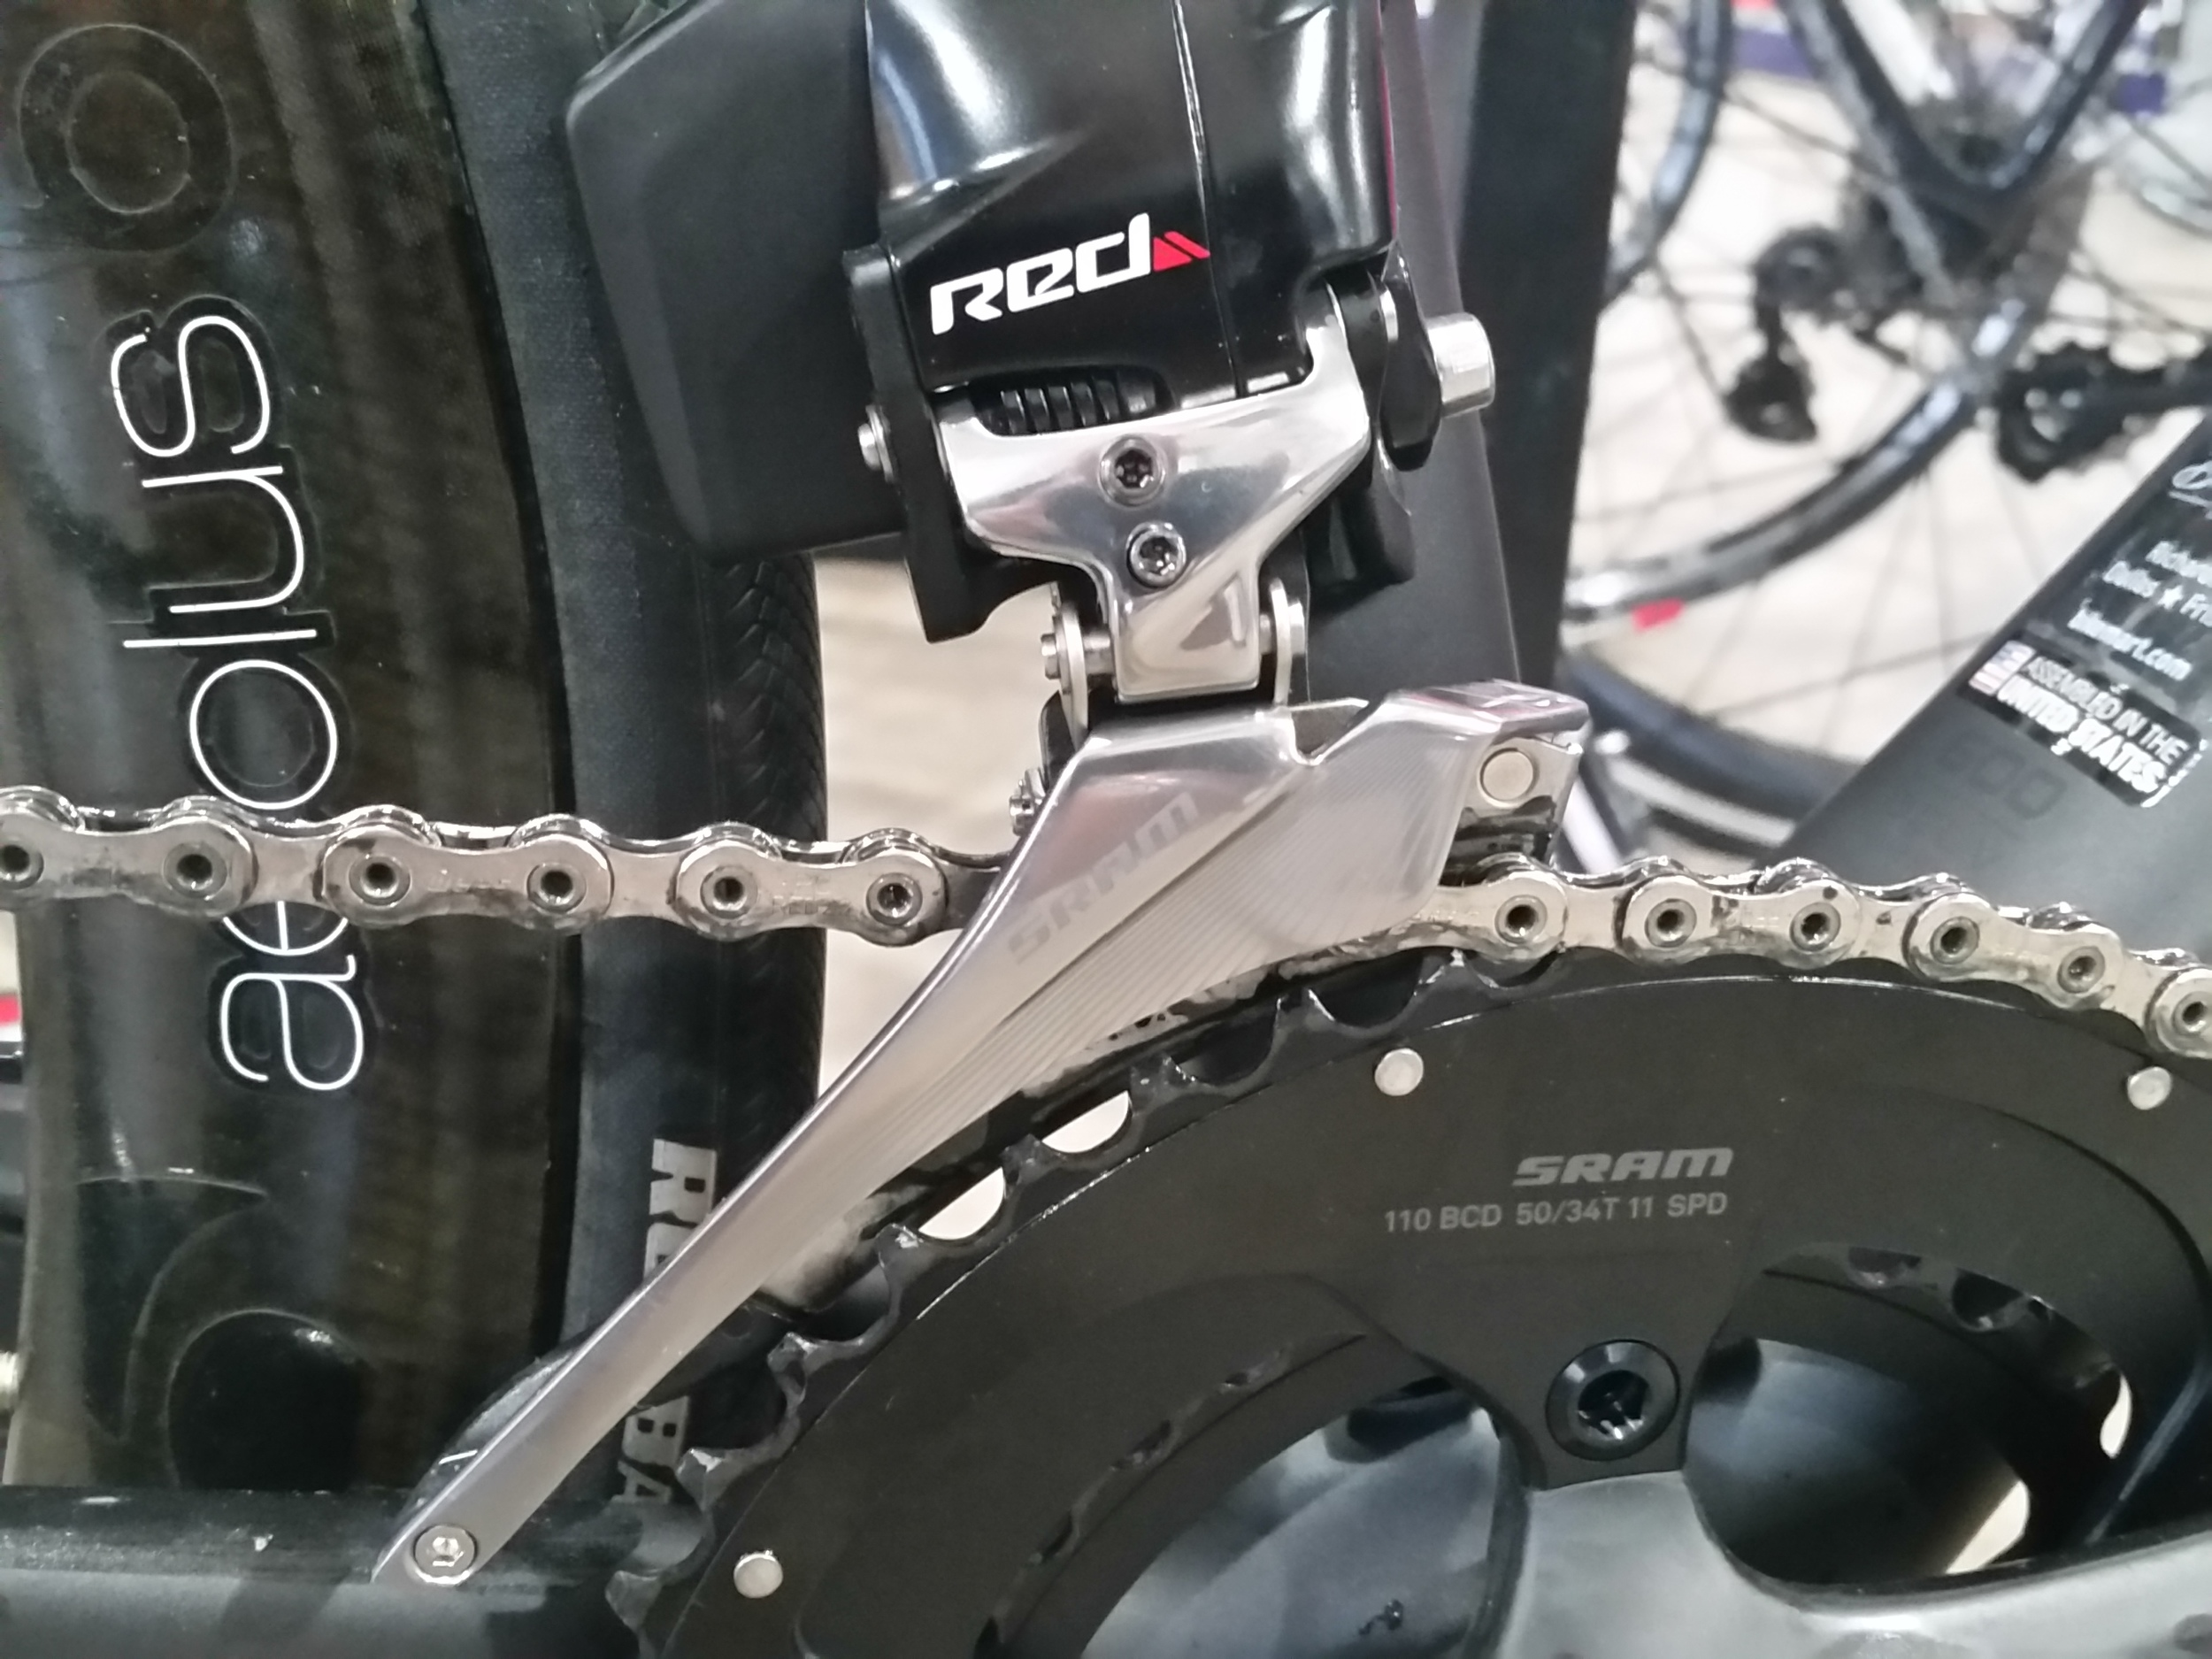 Front Derailleur. Notice the battery is the same, they can be swapped if one runs out of juice.